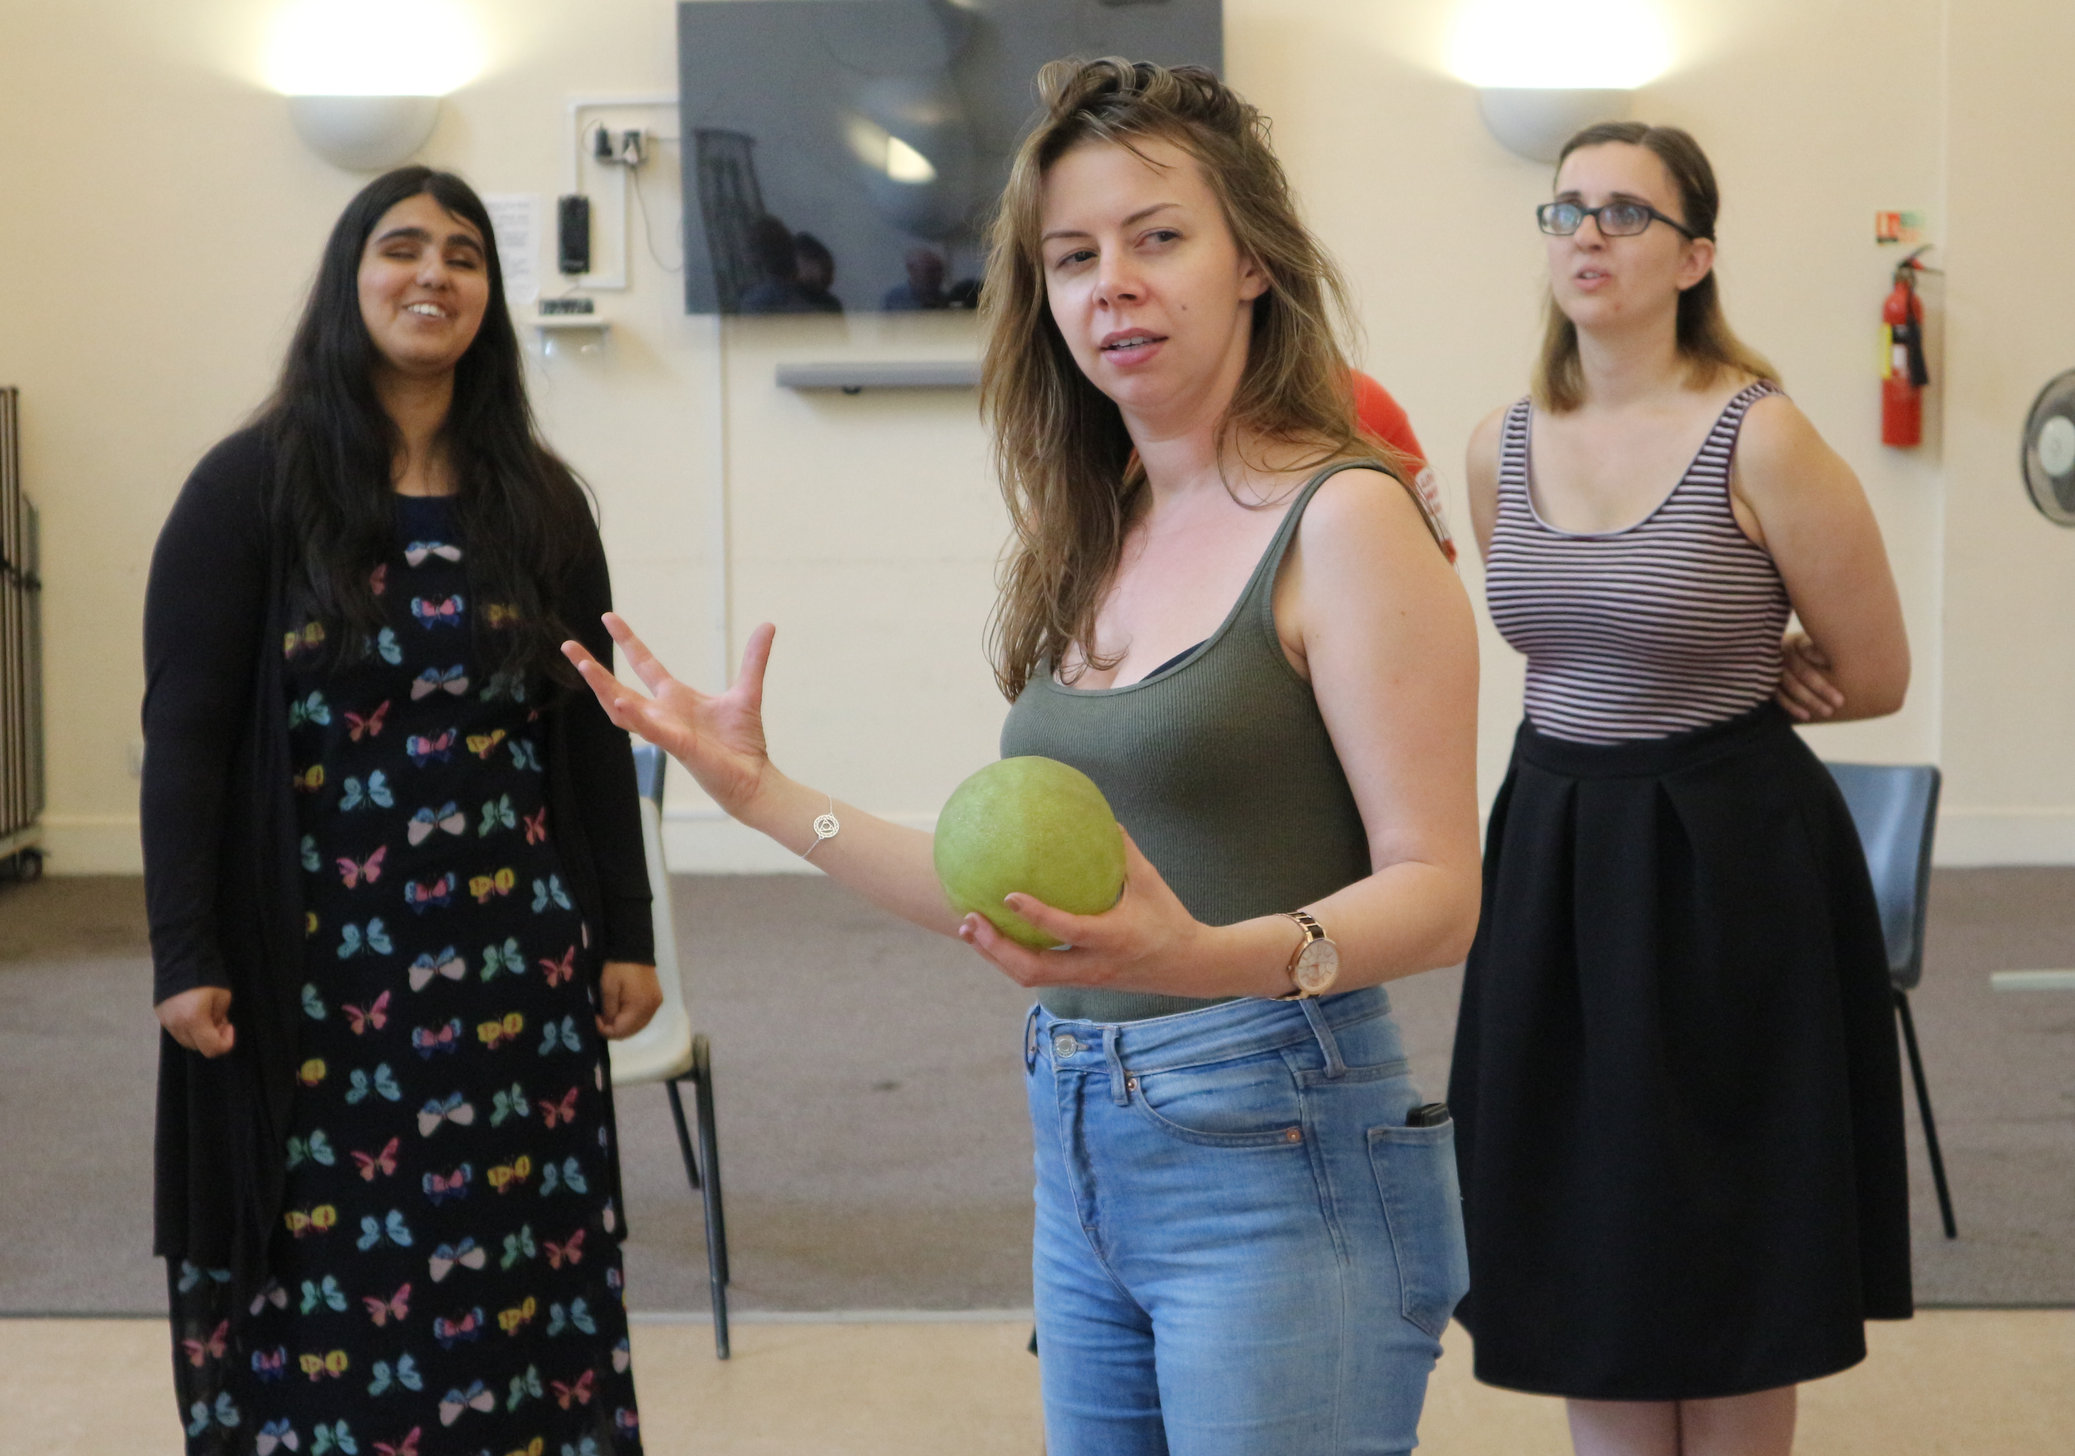 A young woman gesticulating theatrically with one hand and holding up a grapefruit-sized ball with the other.